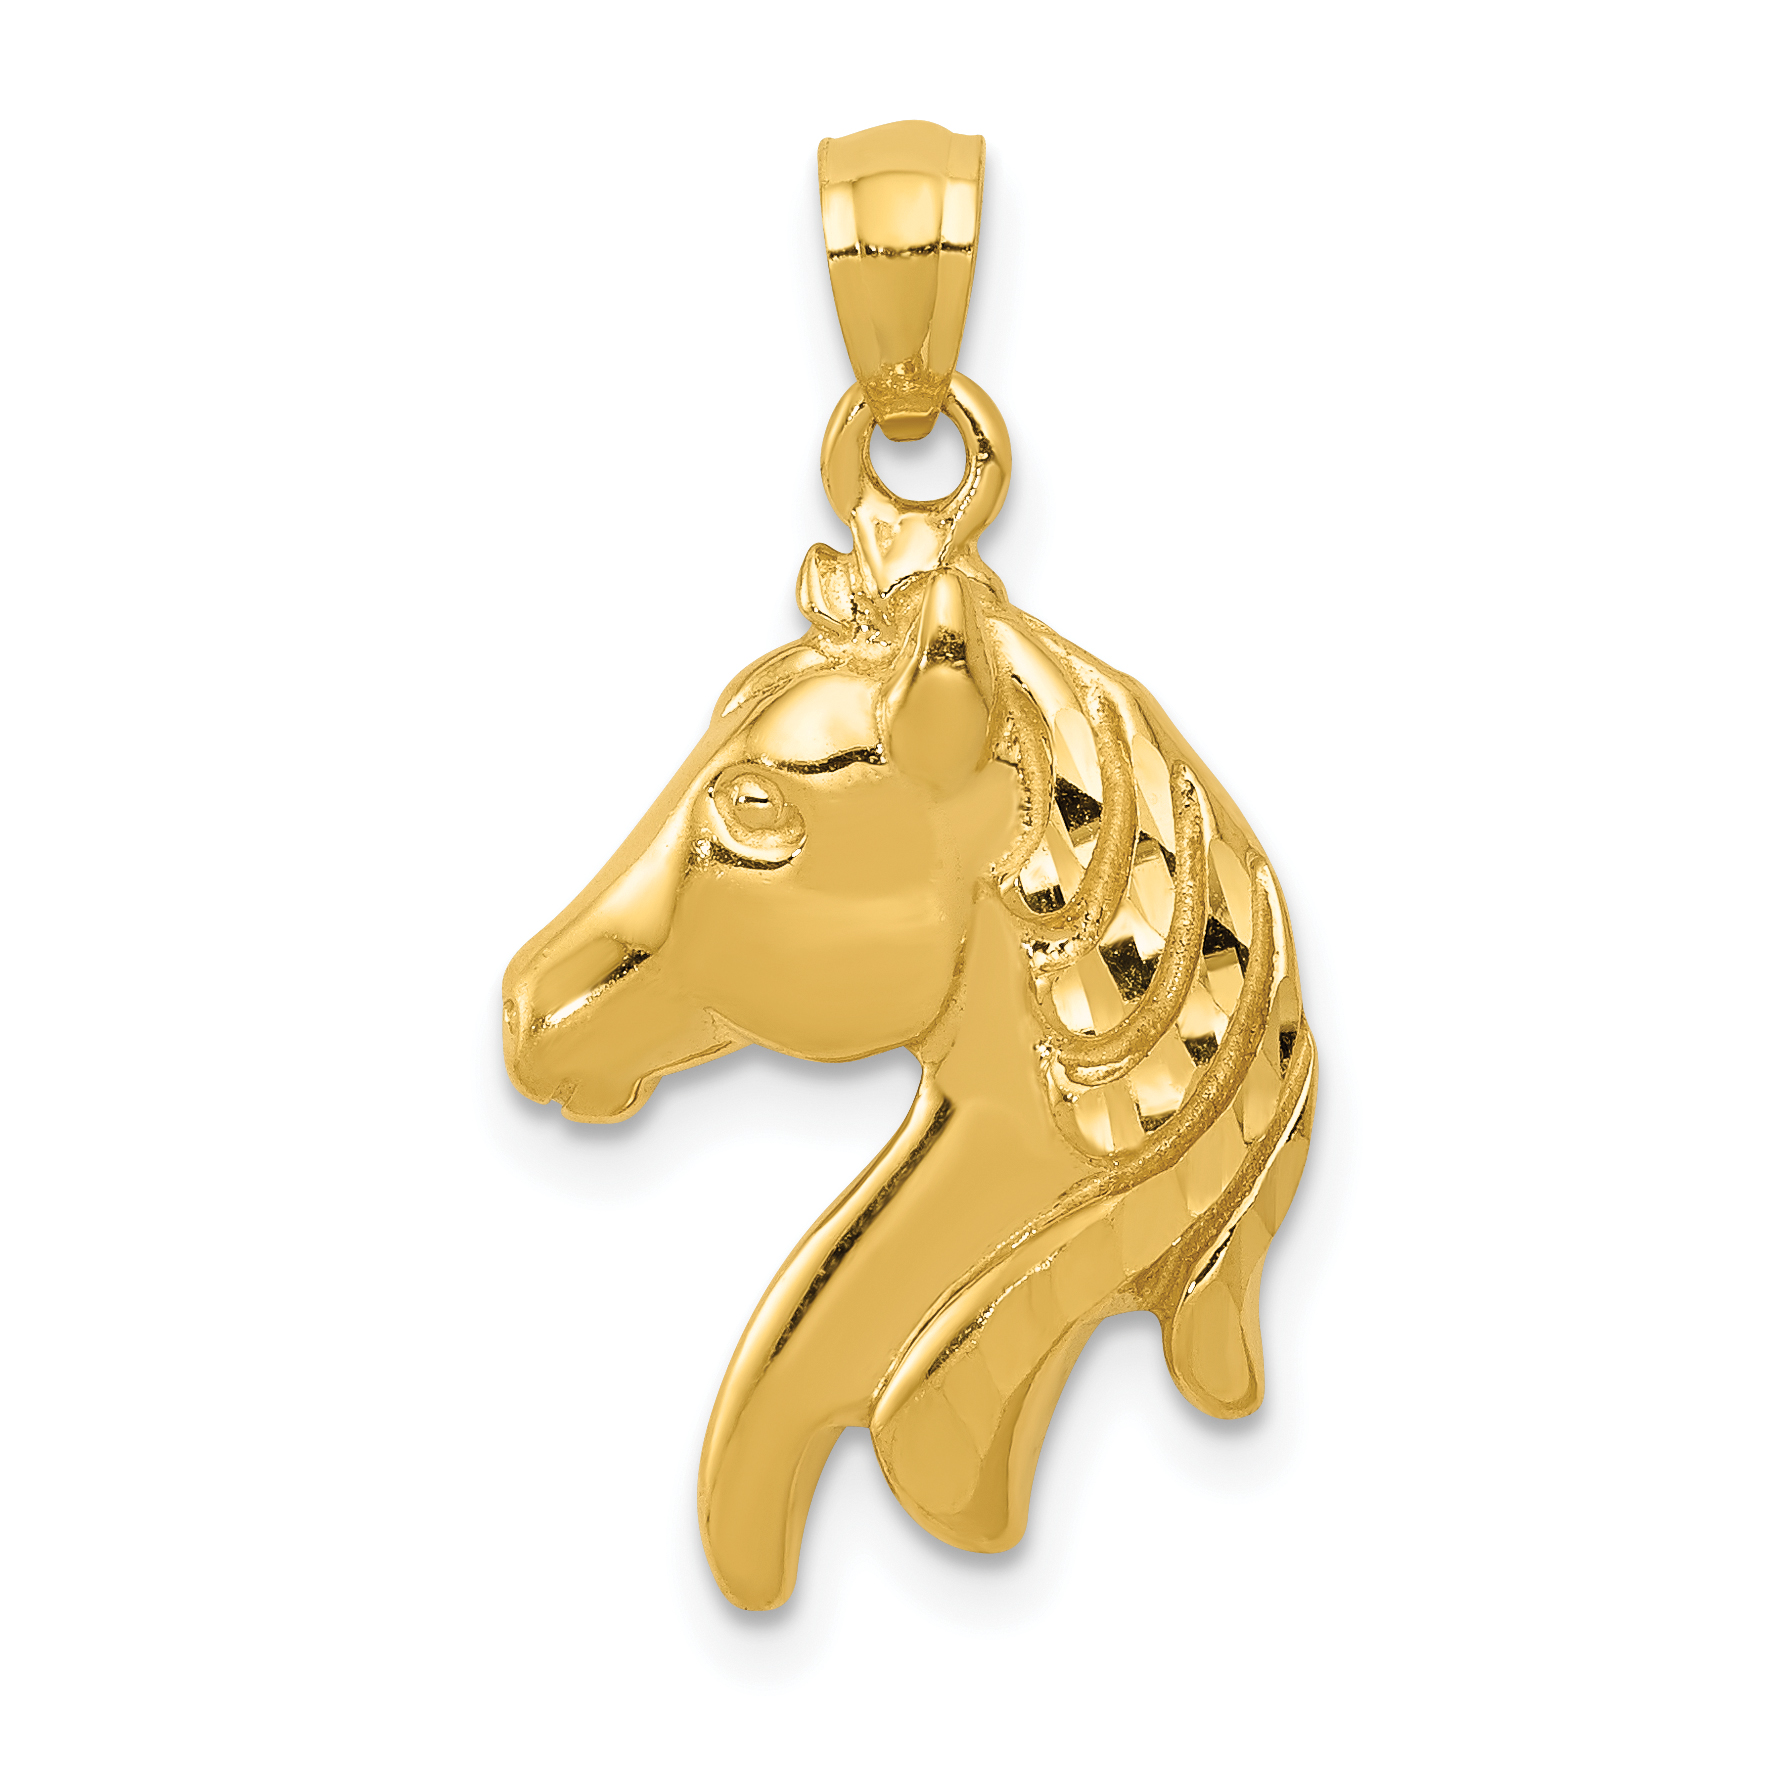 Silver Yellow Plated Horse Shoe And Horse Charm 25mm